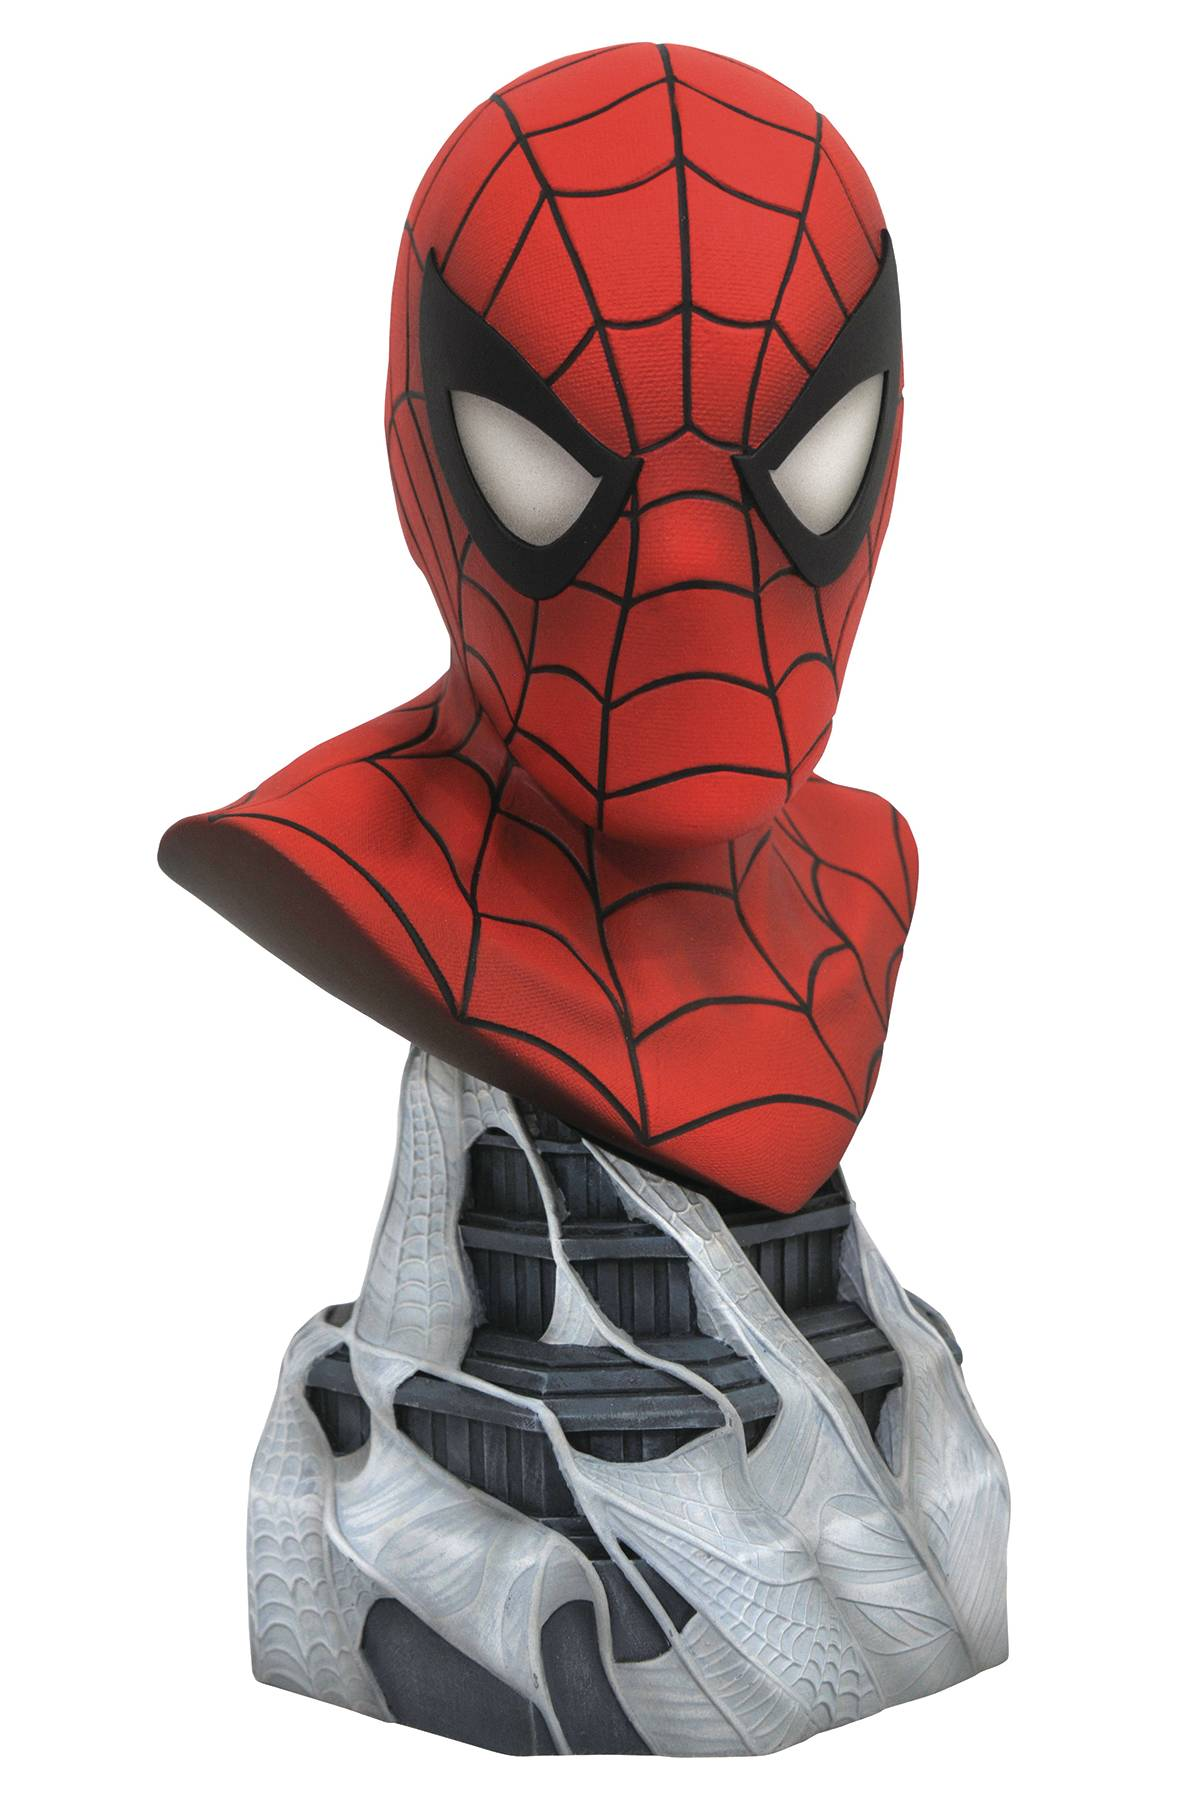 LEGENDS IN 3D MARVEL COMIC SPIDER-MAN 1/2 SCALE BUST